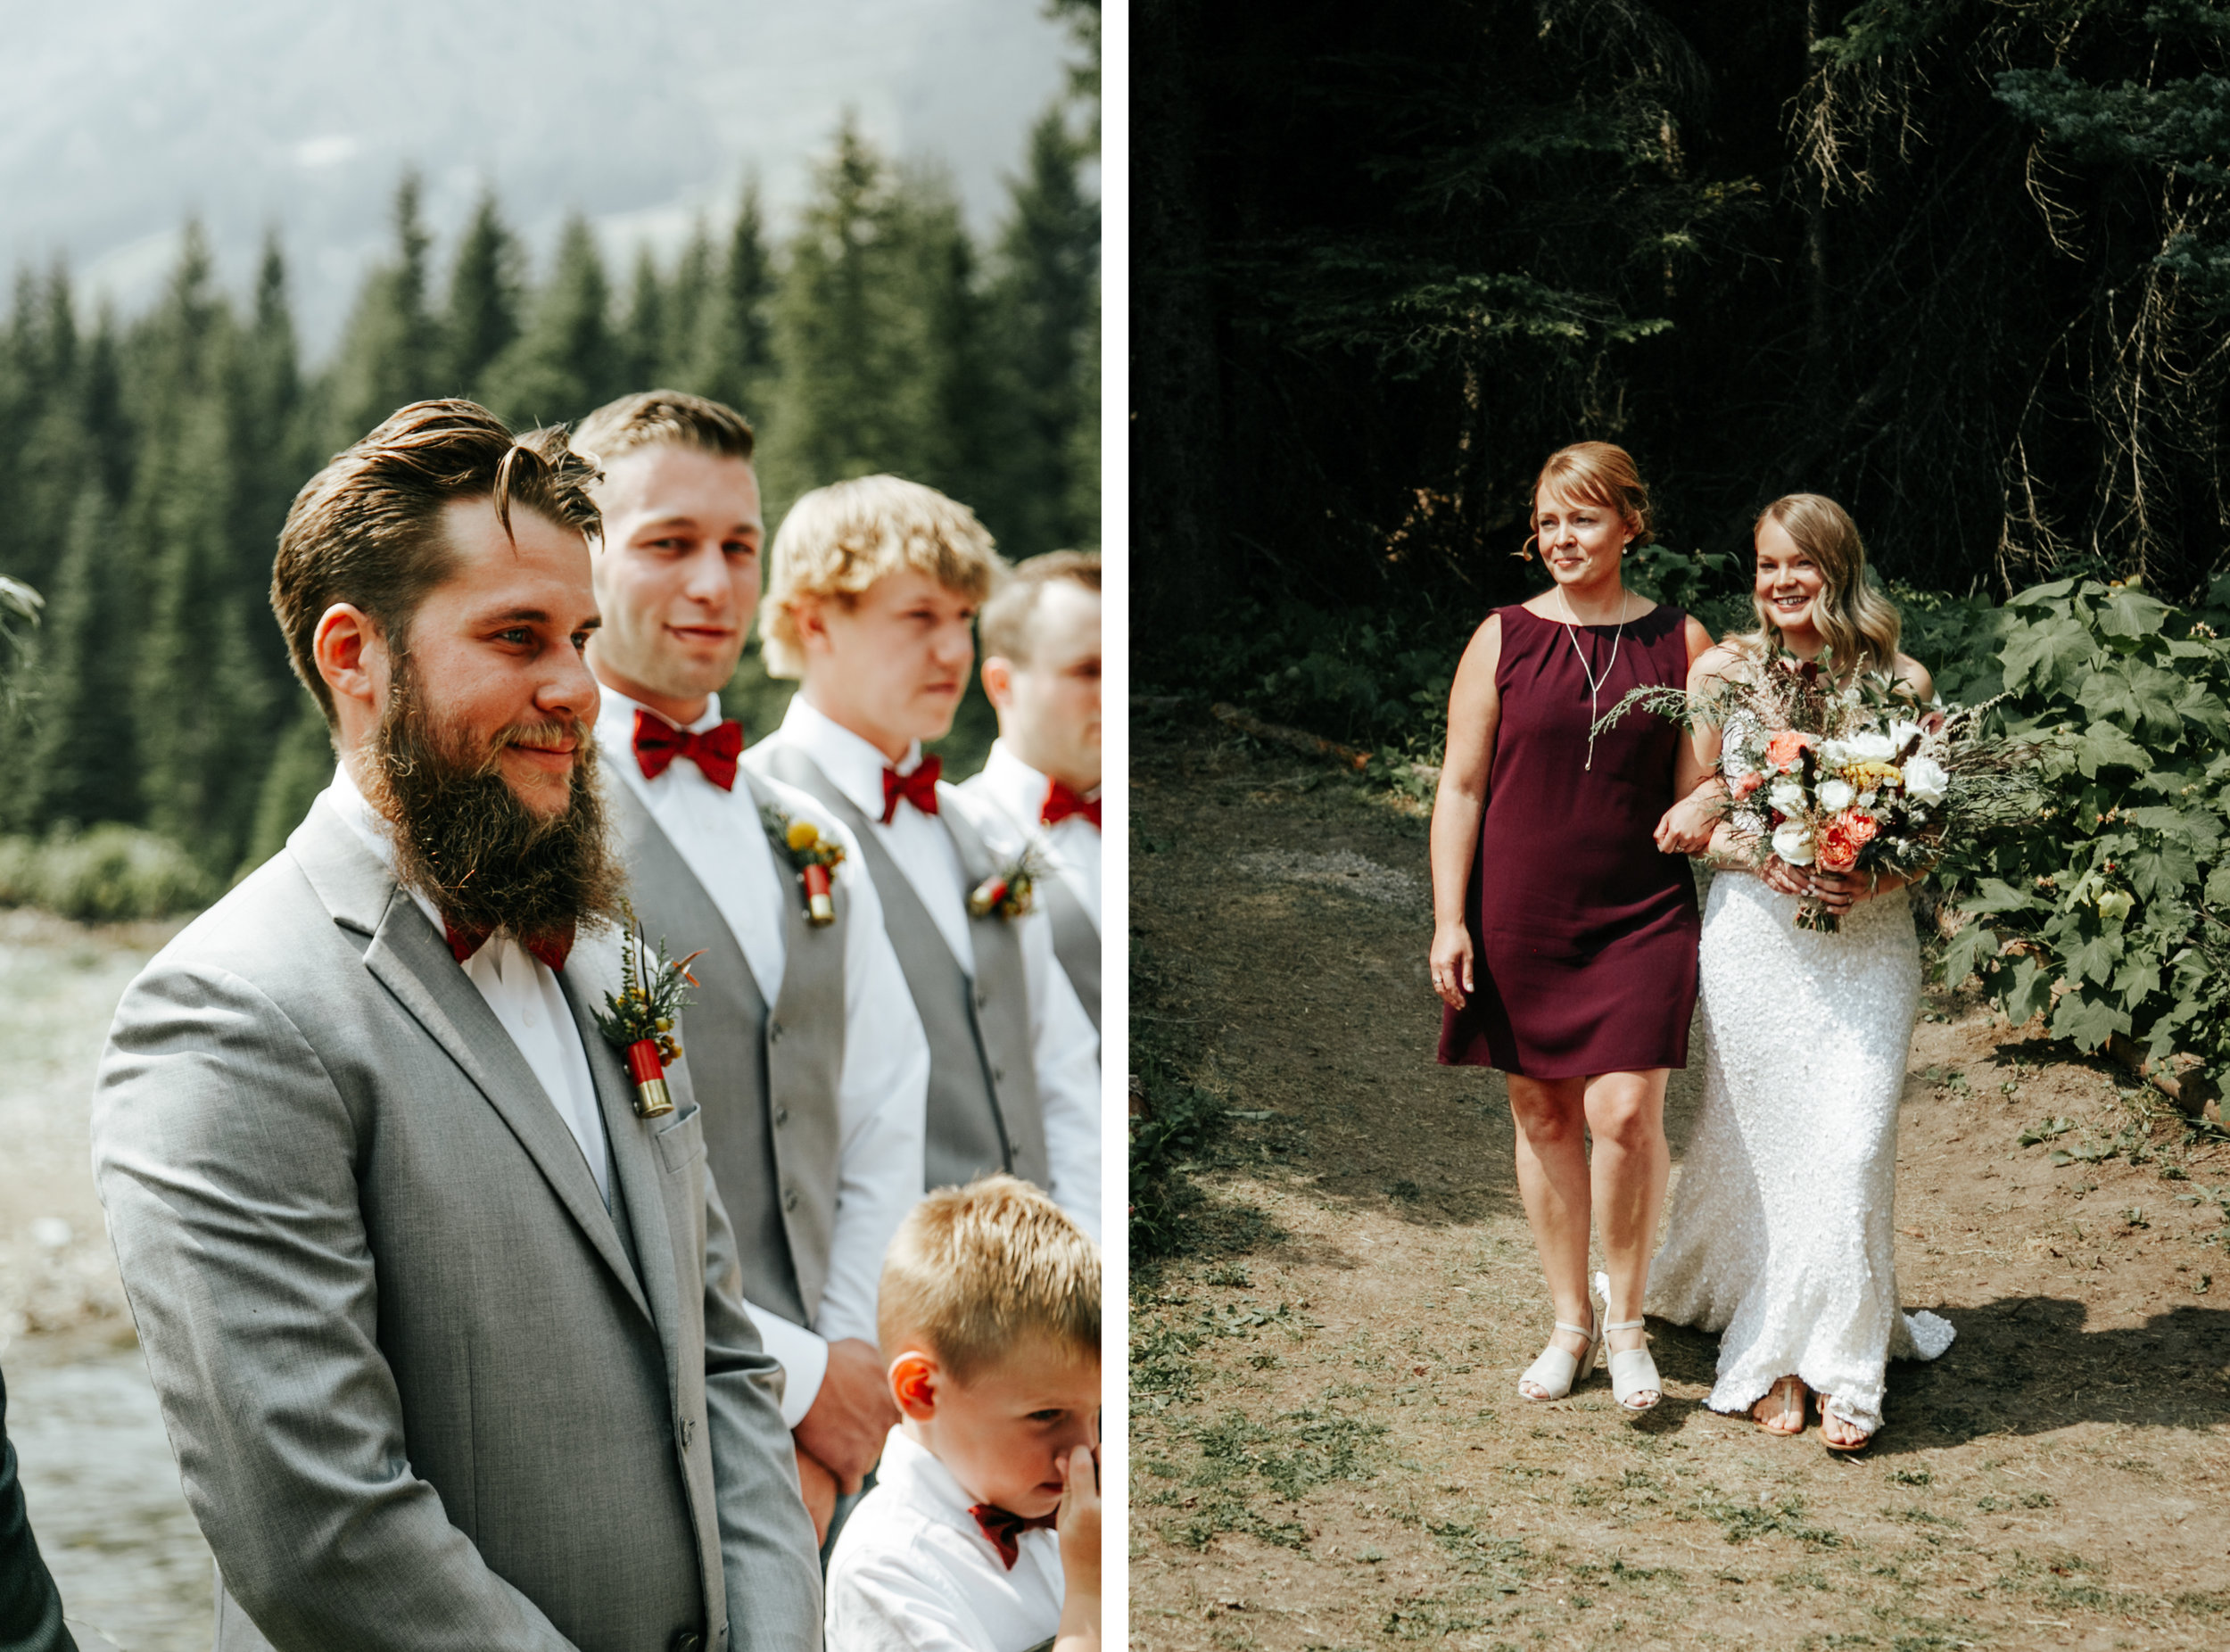 castle-mountain-wedding-photographer-love-and-be-loved-photography-lethbridge-pincher-creek-crowsnest-pass-yannick-rylee-photo-image-picture-68.jpg